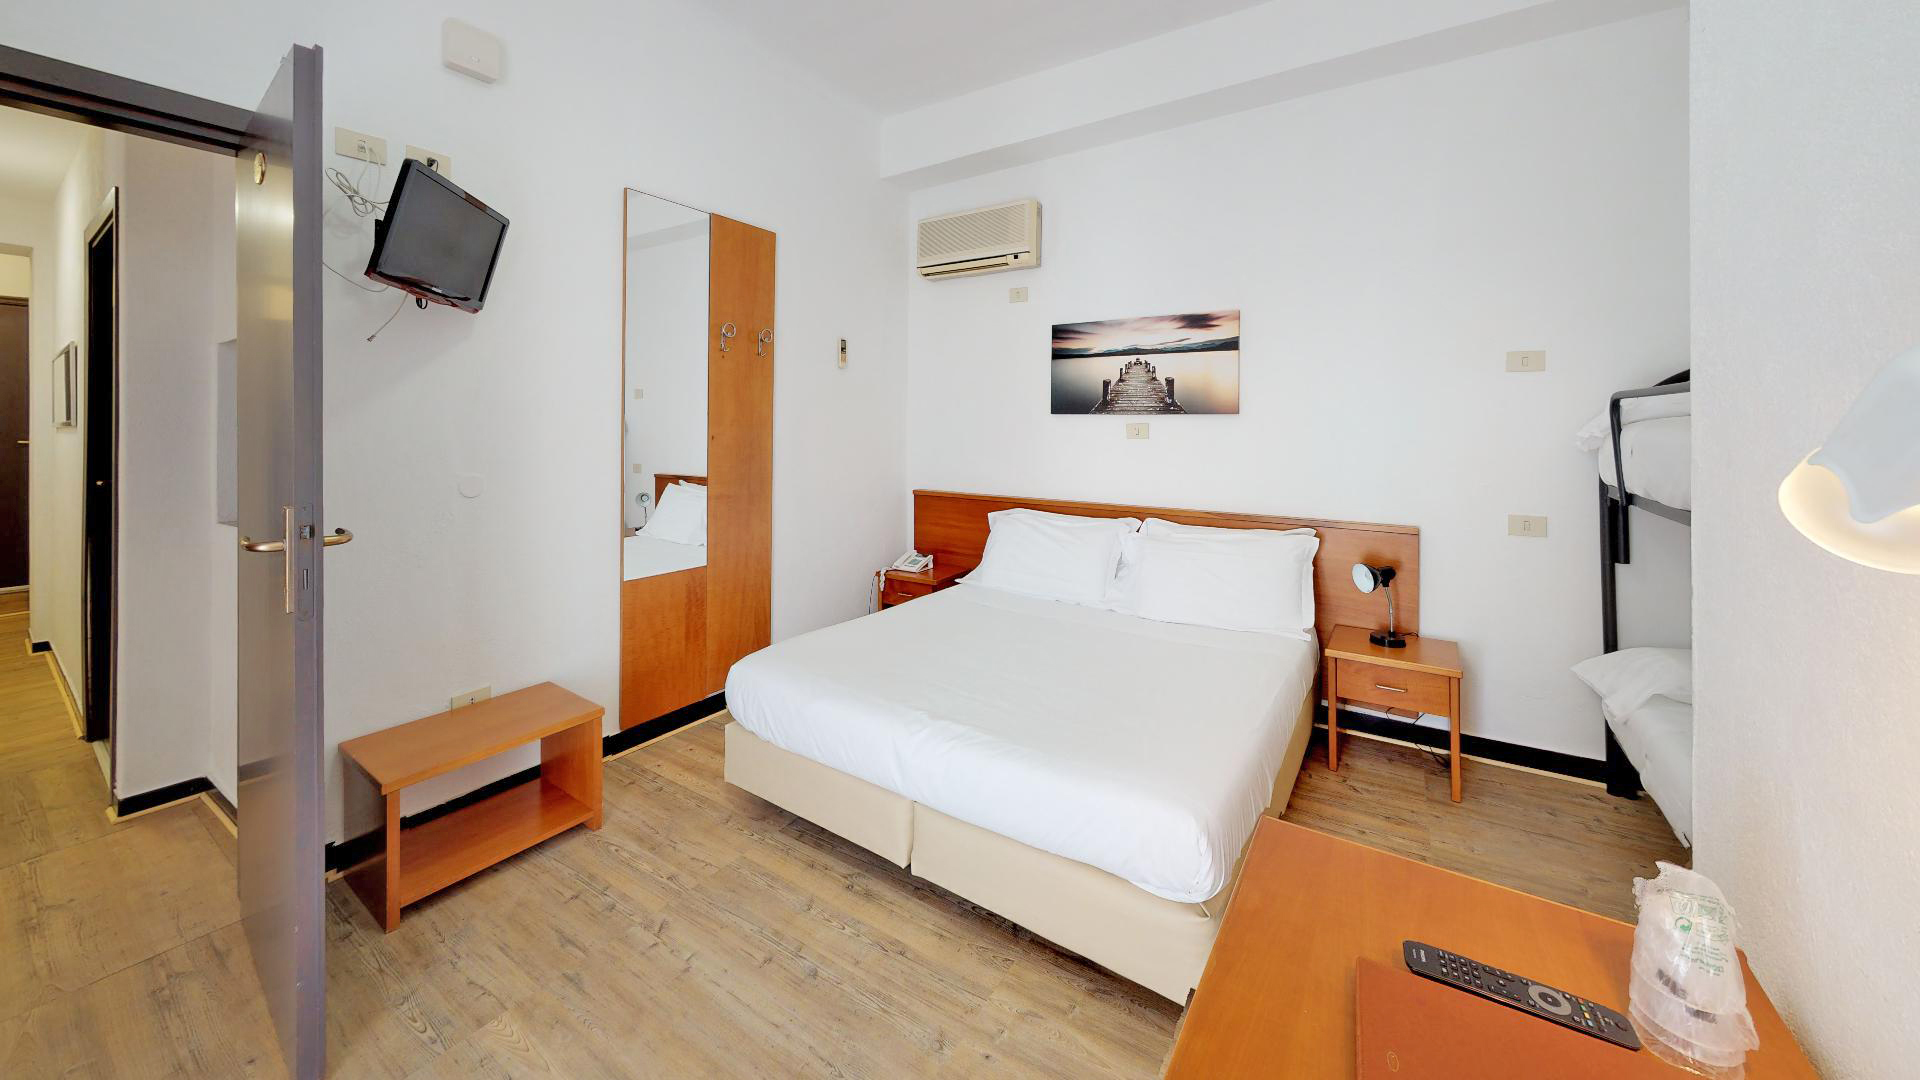 Hotel-Arcobaleno-Celle-Bedroom(4)